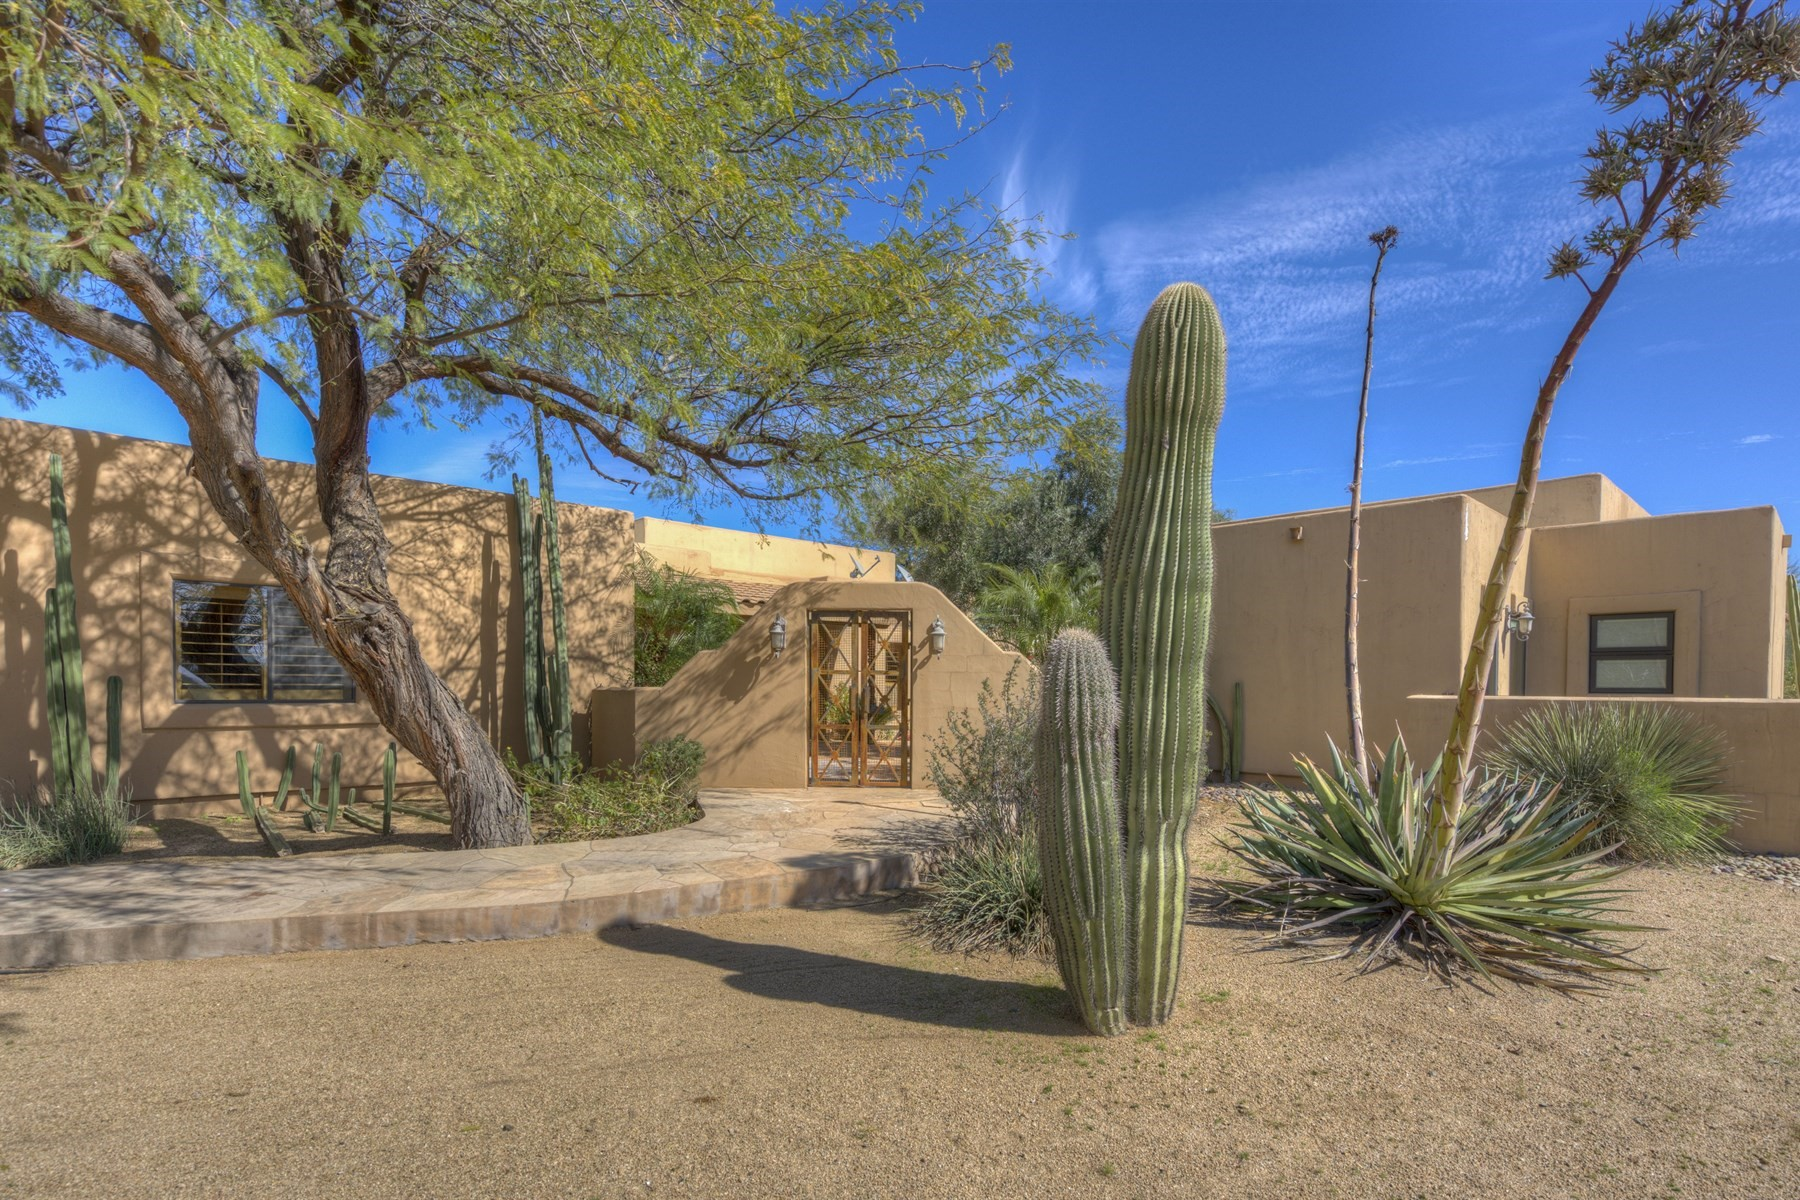 Single Family Home for Sale at Sonoran Ranch house in Cave Creek 5101 E Cloud Rd, Cave Creek, Arizona, 85331 United States